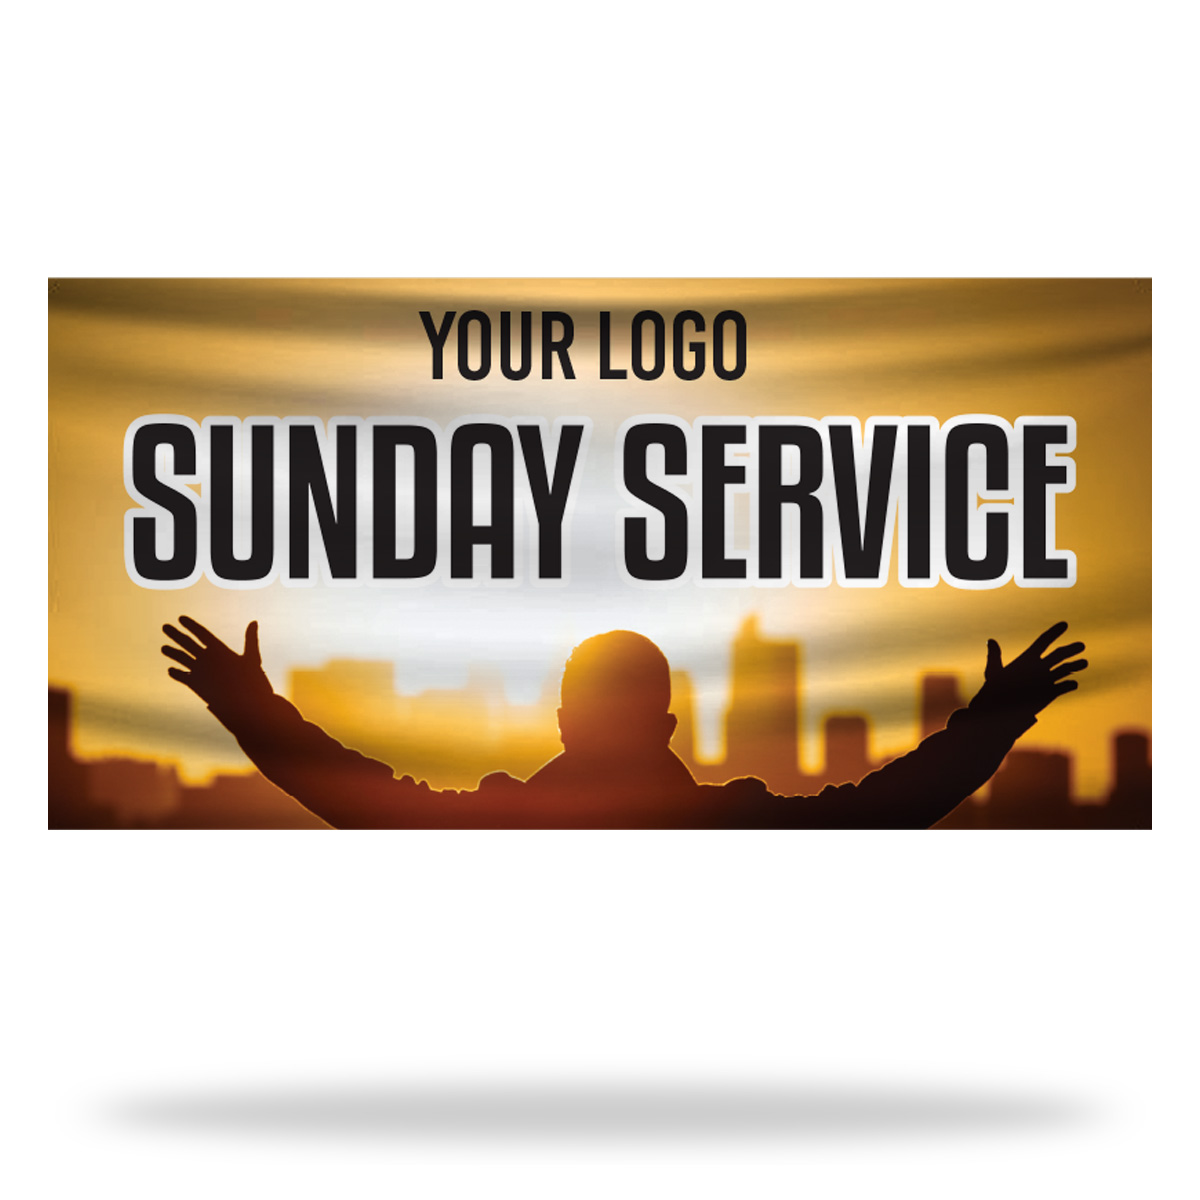 Sunday Service Flags & Banners Design 01